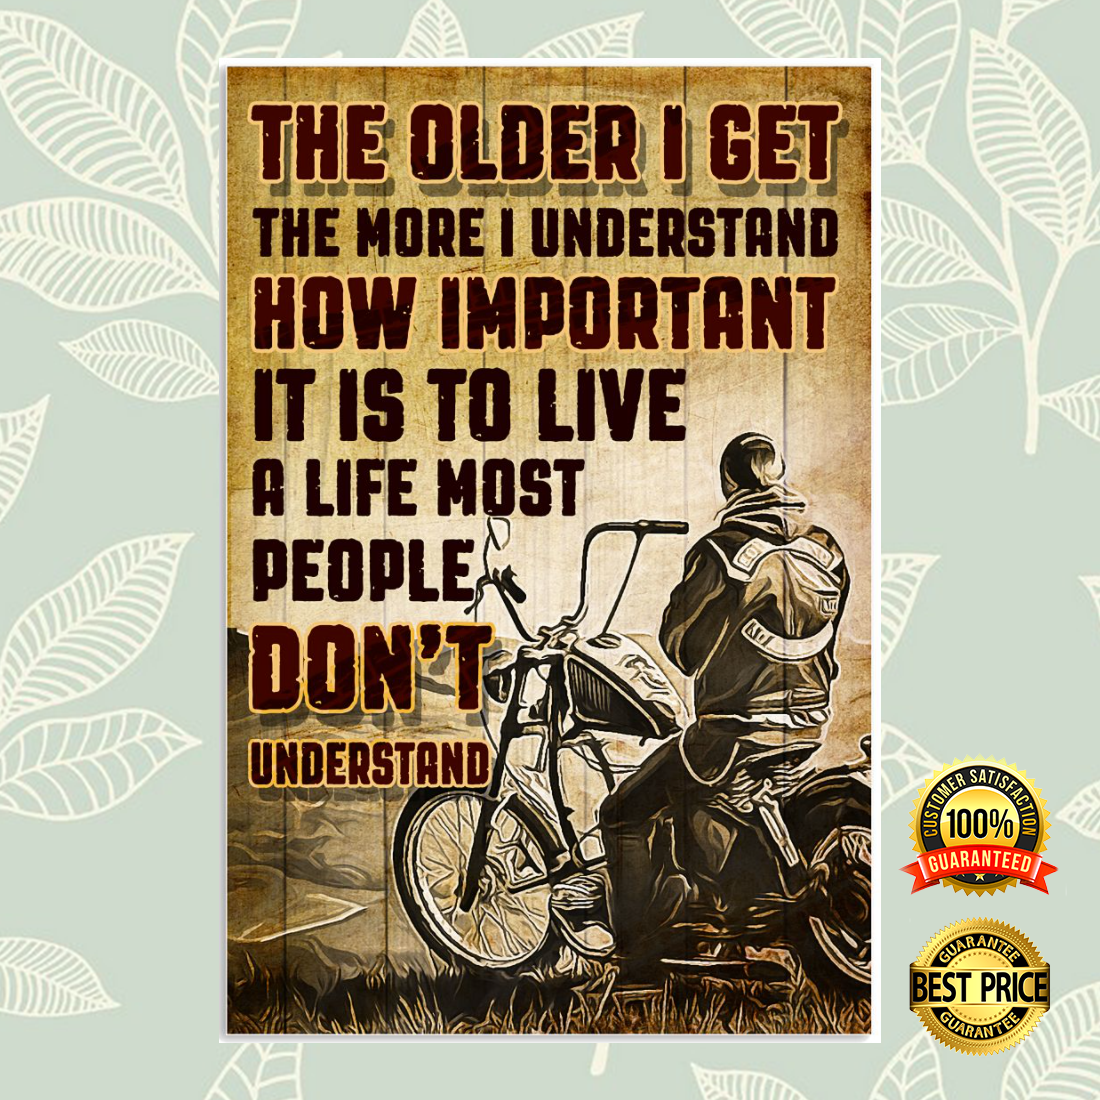 MOTORCYCLE THE OLDER I GET THE MORE I UNDERSTAND HOW IMPORTANT IT IS TO LIVE A LIFE MOST PEOPLE DON'T UNDERSTAND POSTER 5